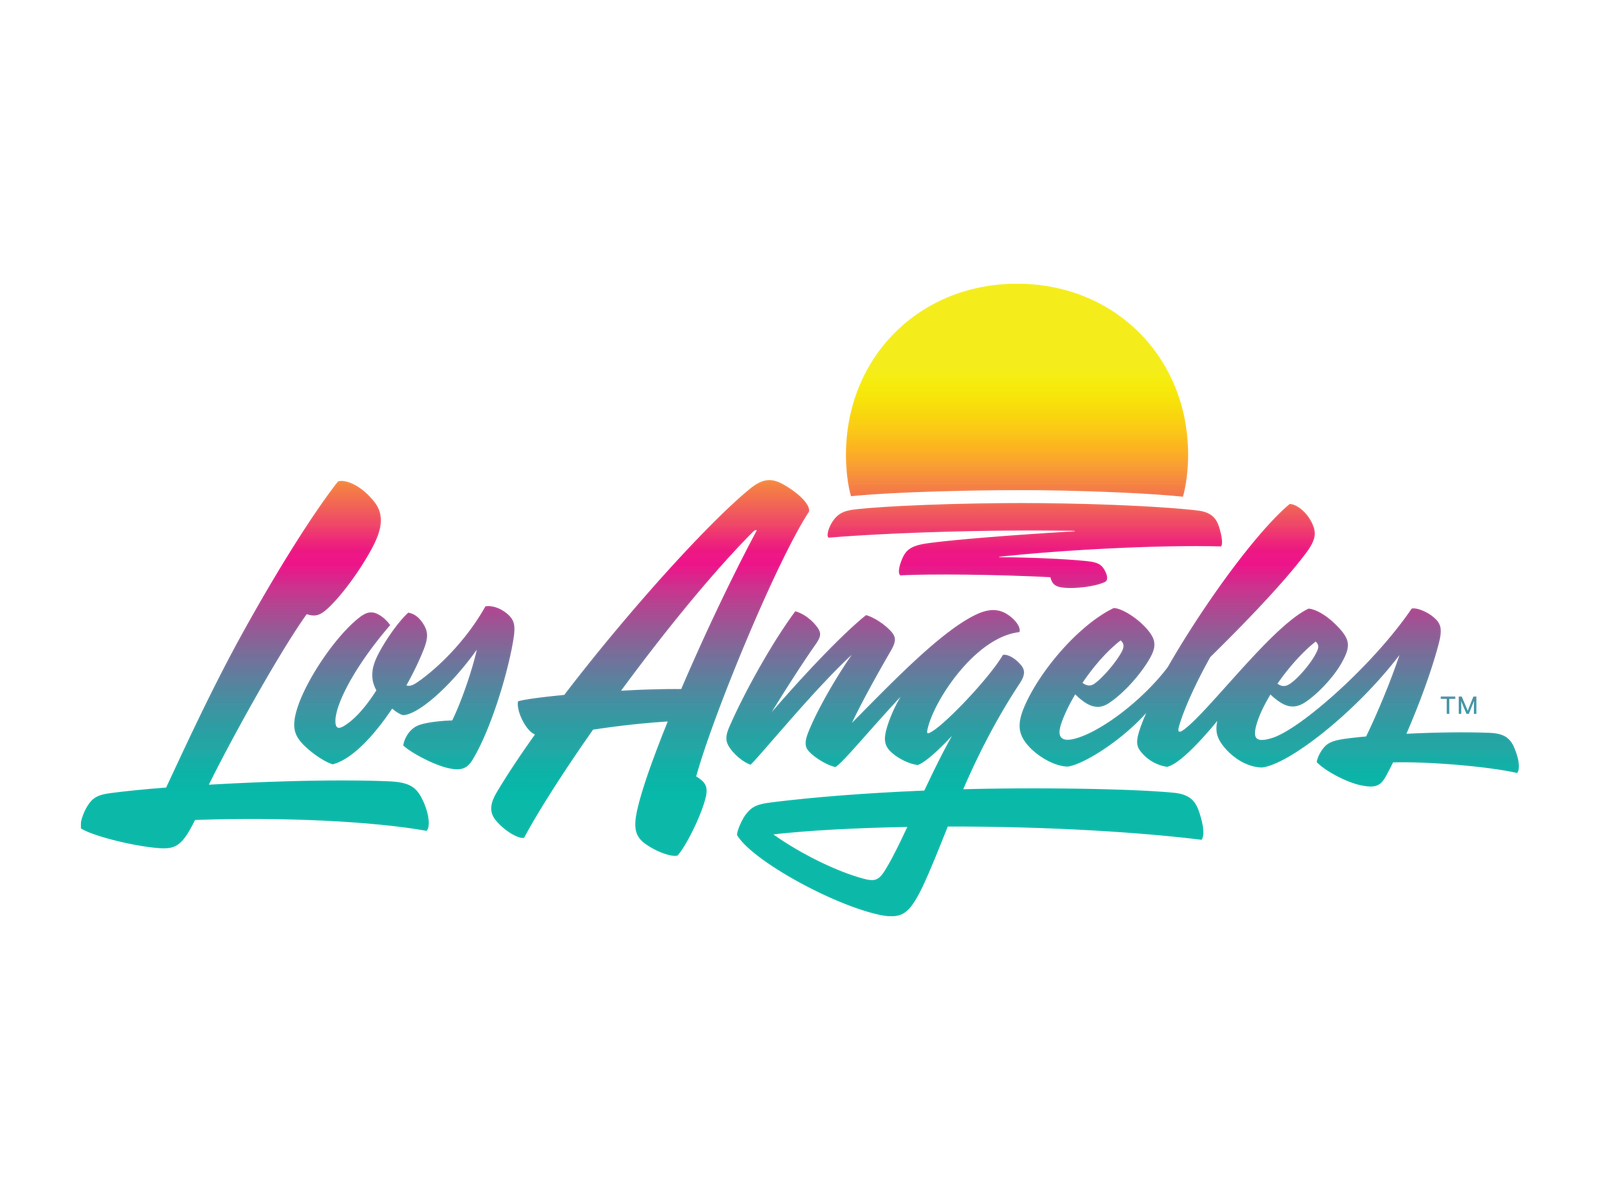 Los Angeles Tourism & Convention Board